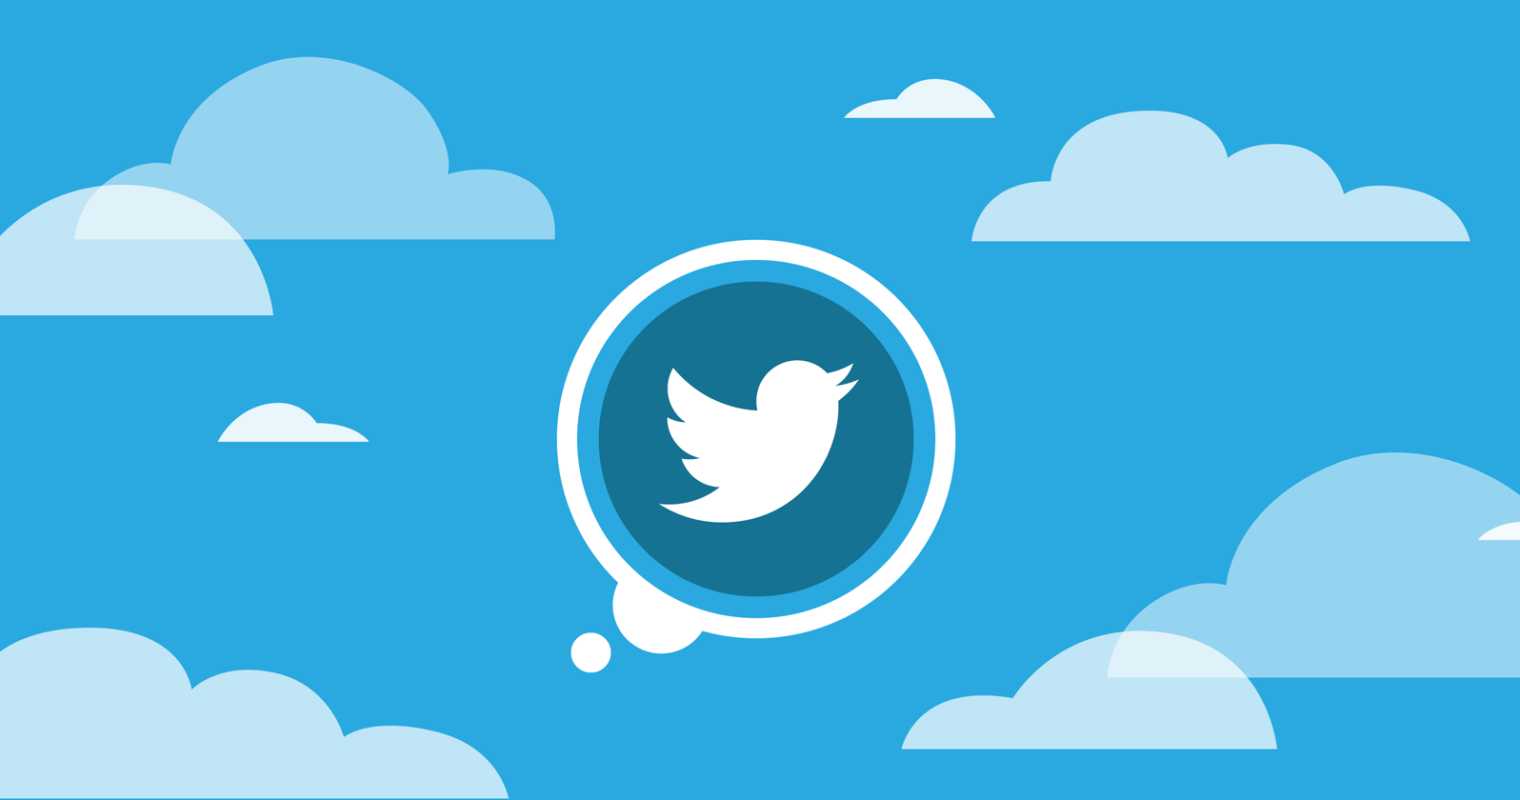 Stories Are Coming to Twitter with 'Fleets' & This Week's Digital Marketing News [PODCAST]